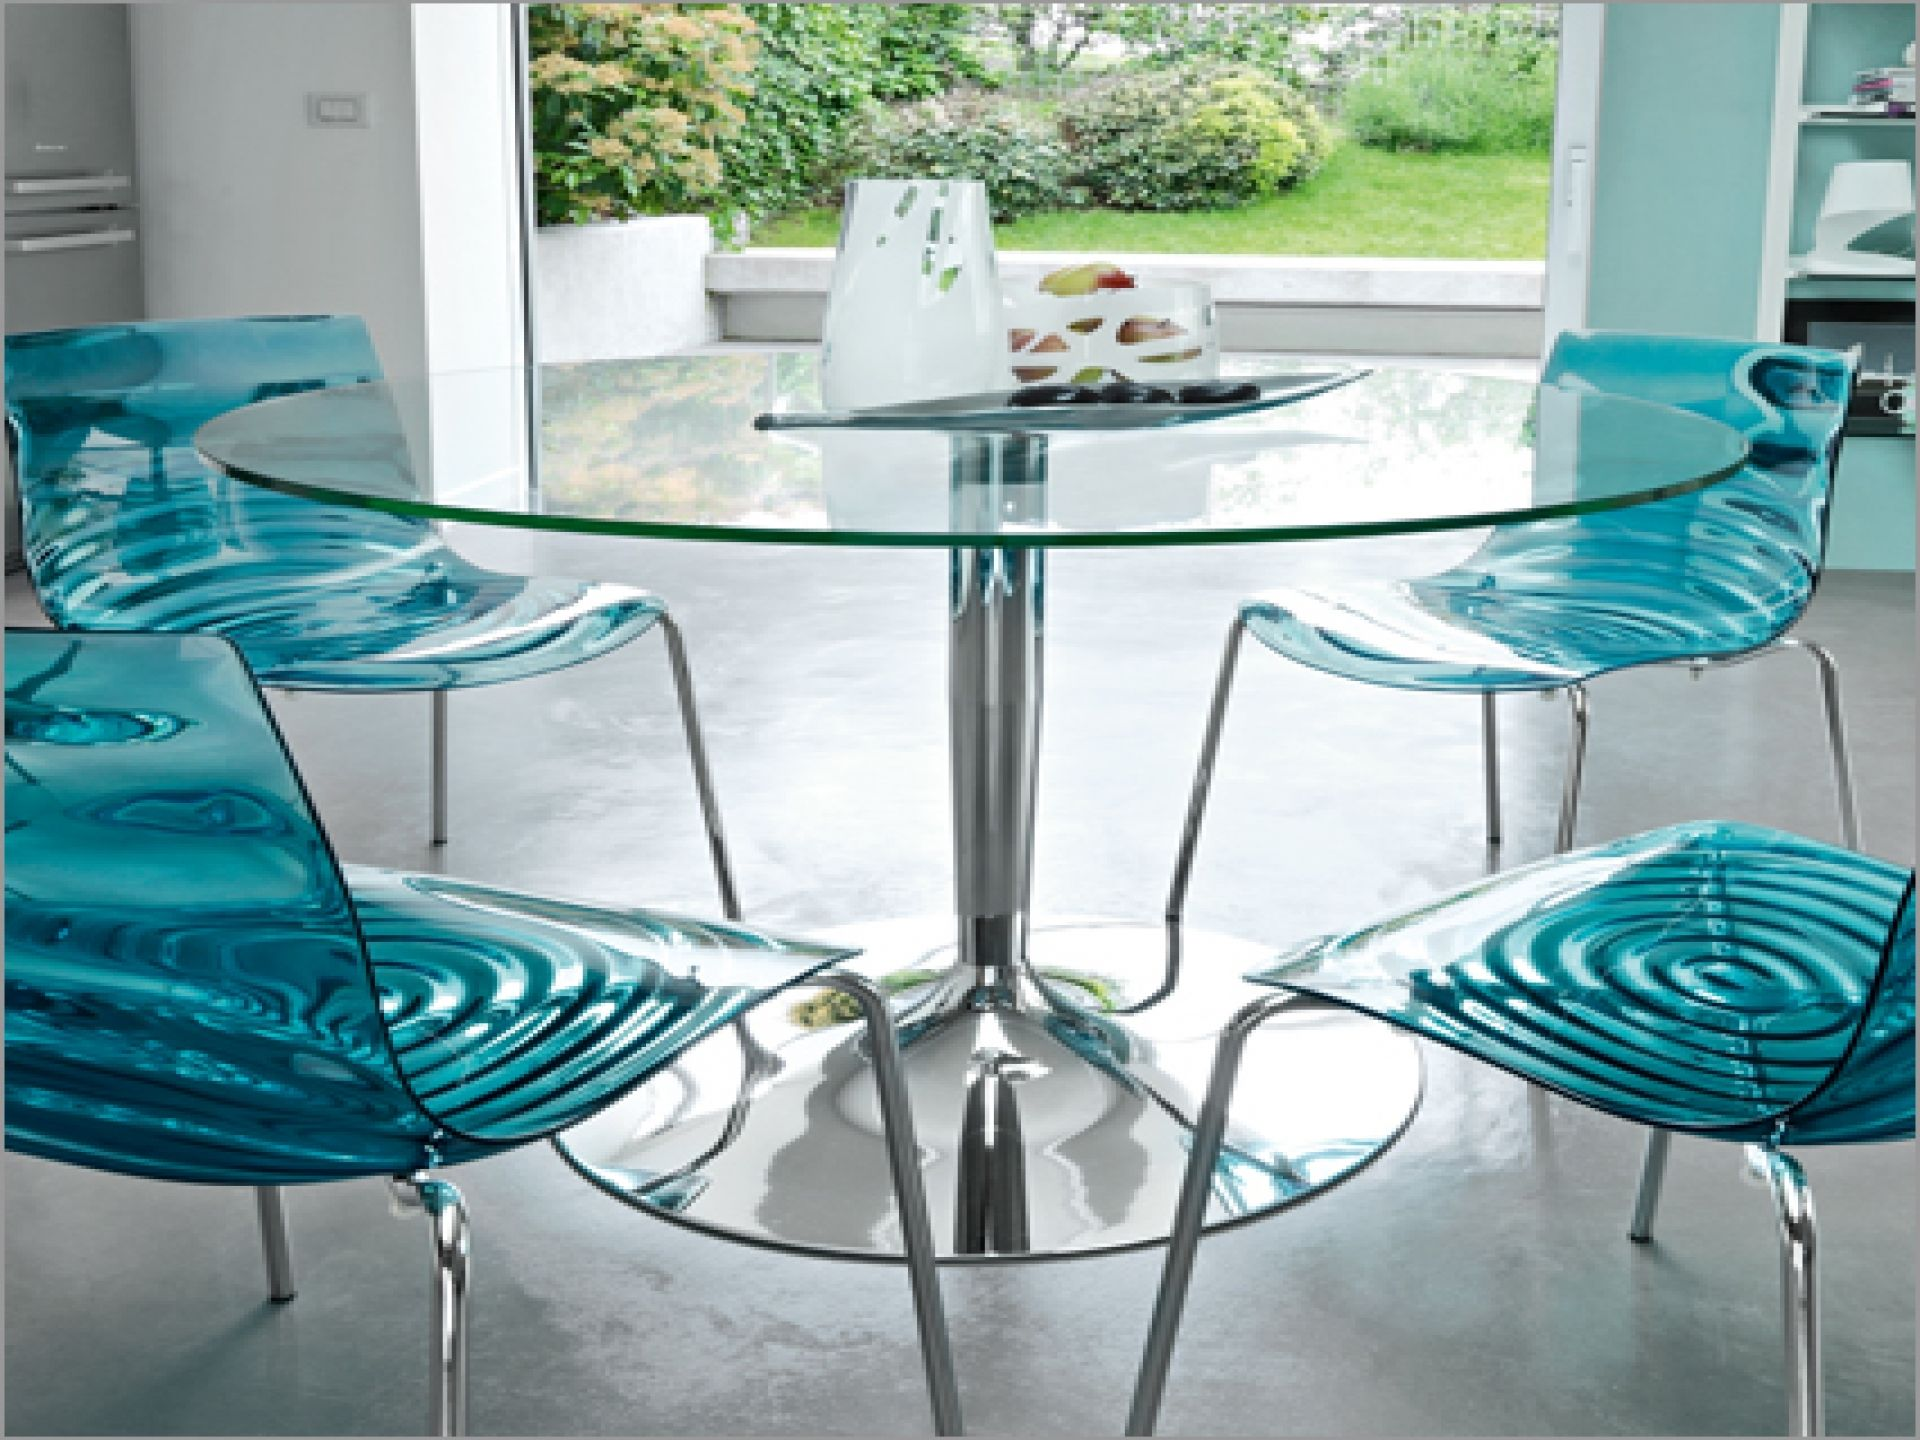 tables table future frosted glass com in ikea benefits instachimp kitchen choosing